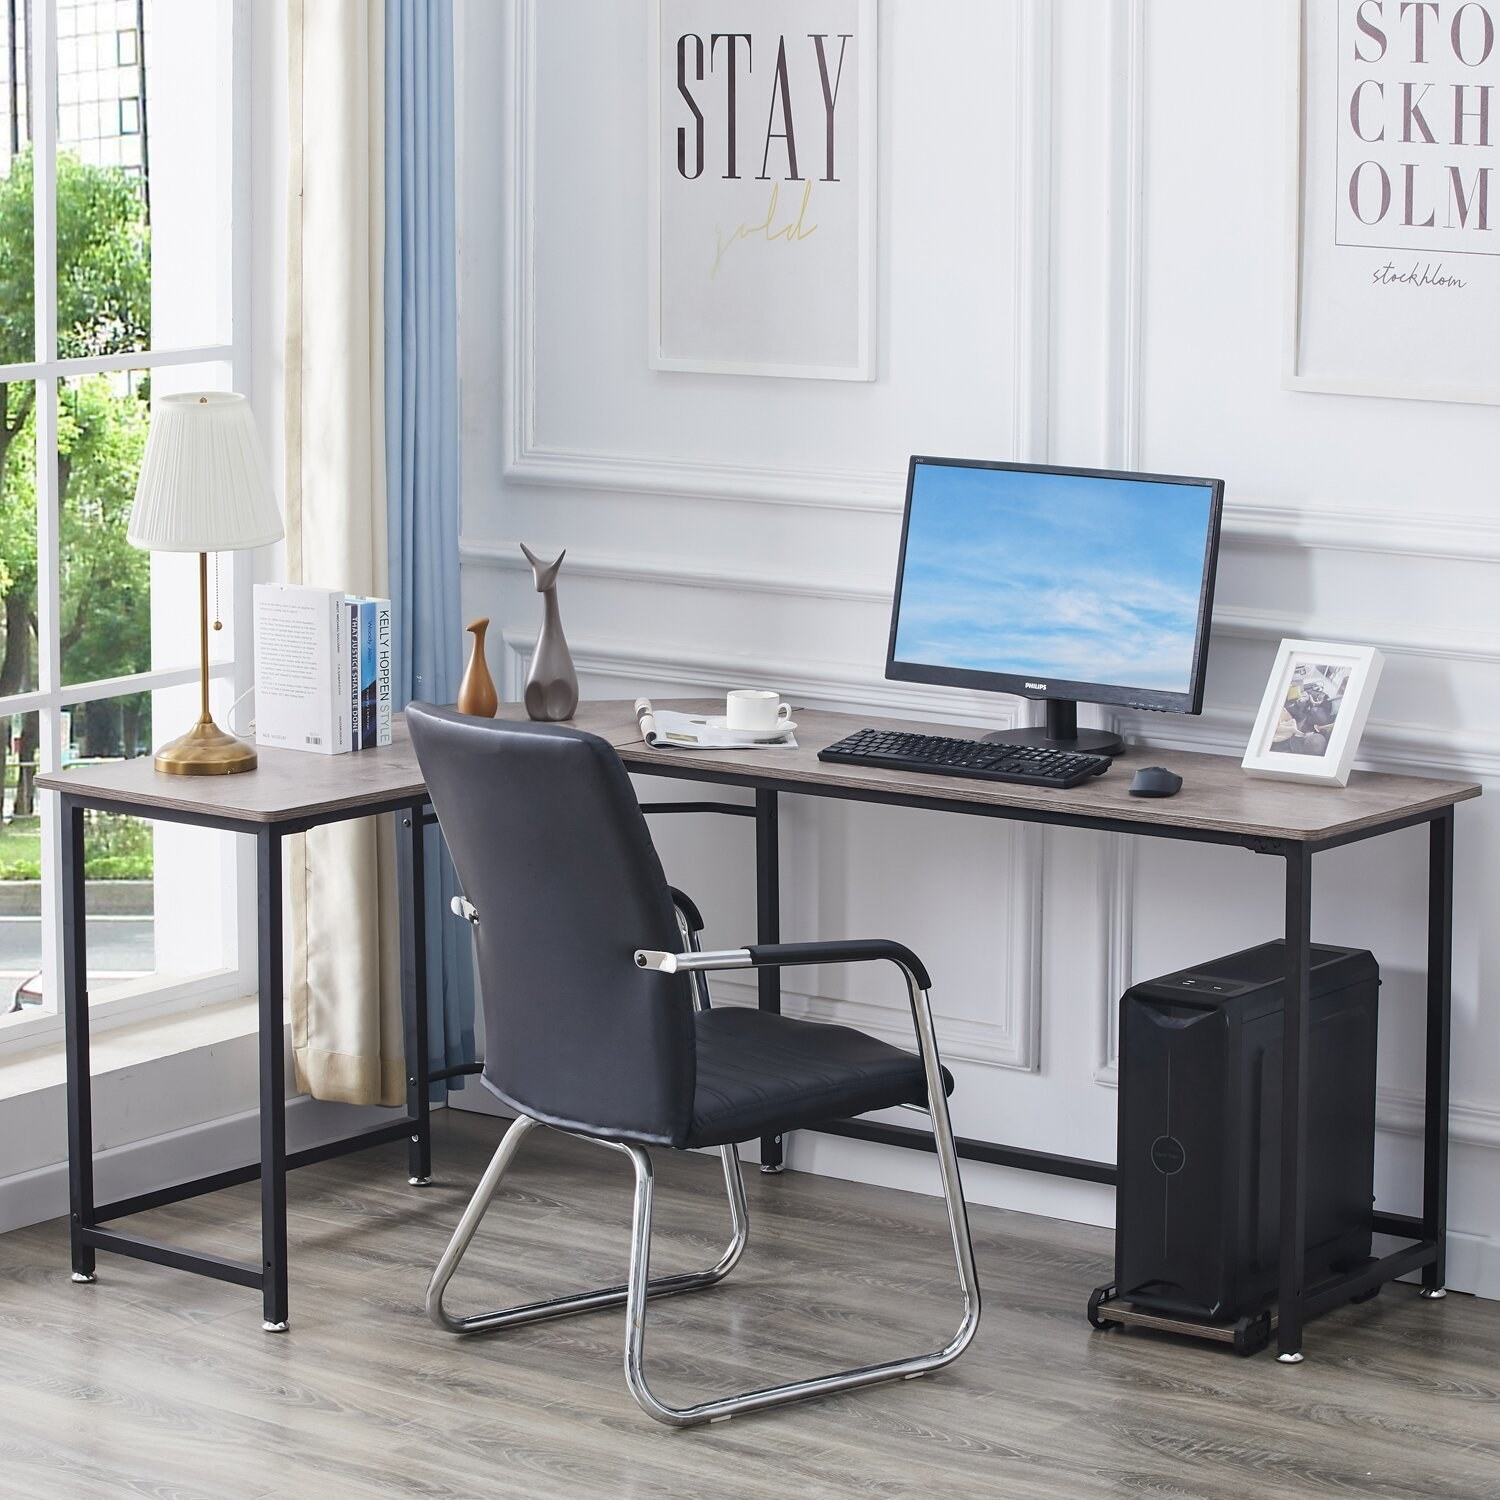 l-shaped desk in the corner of a room